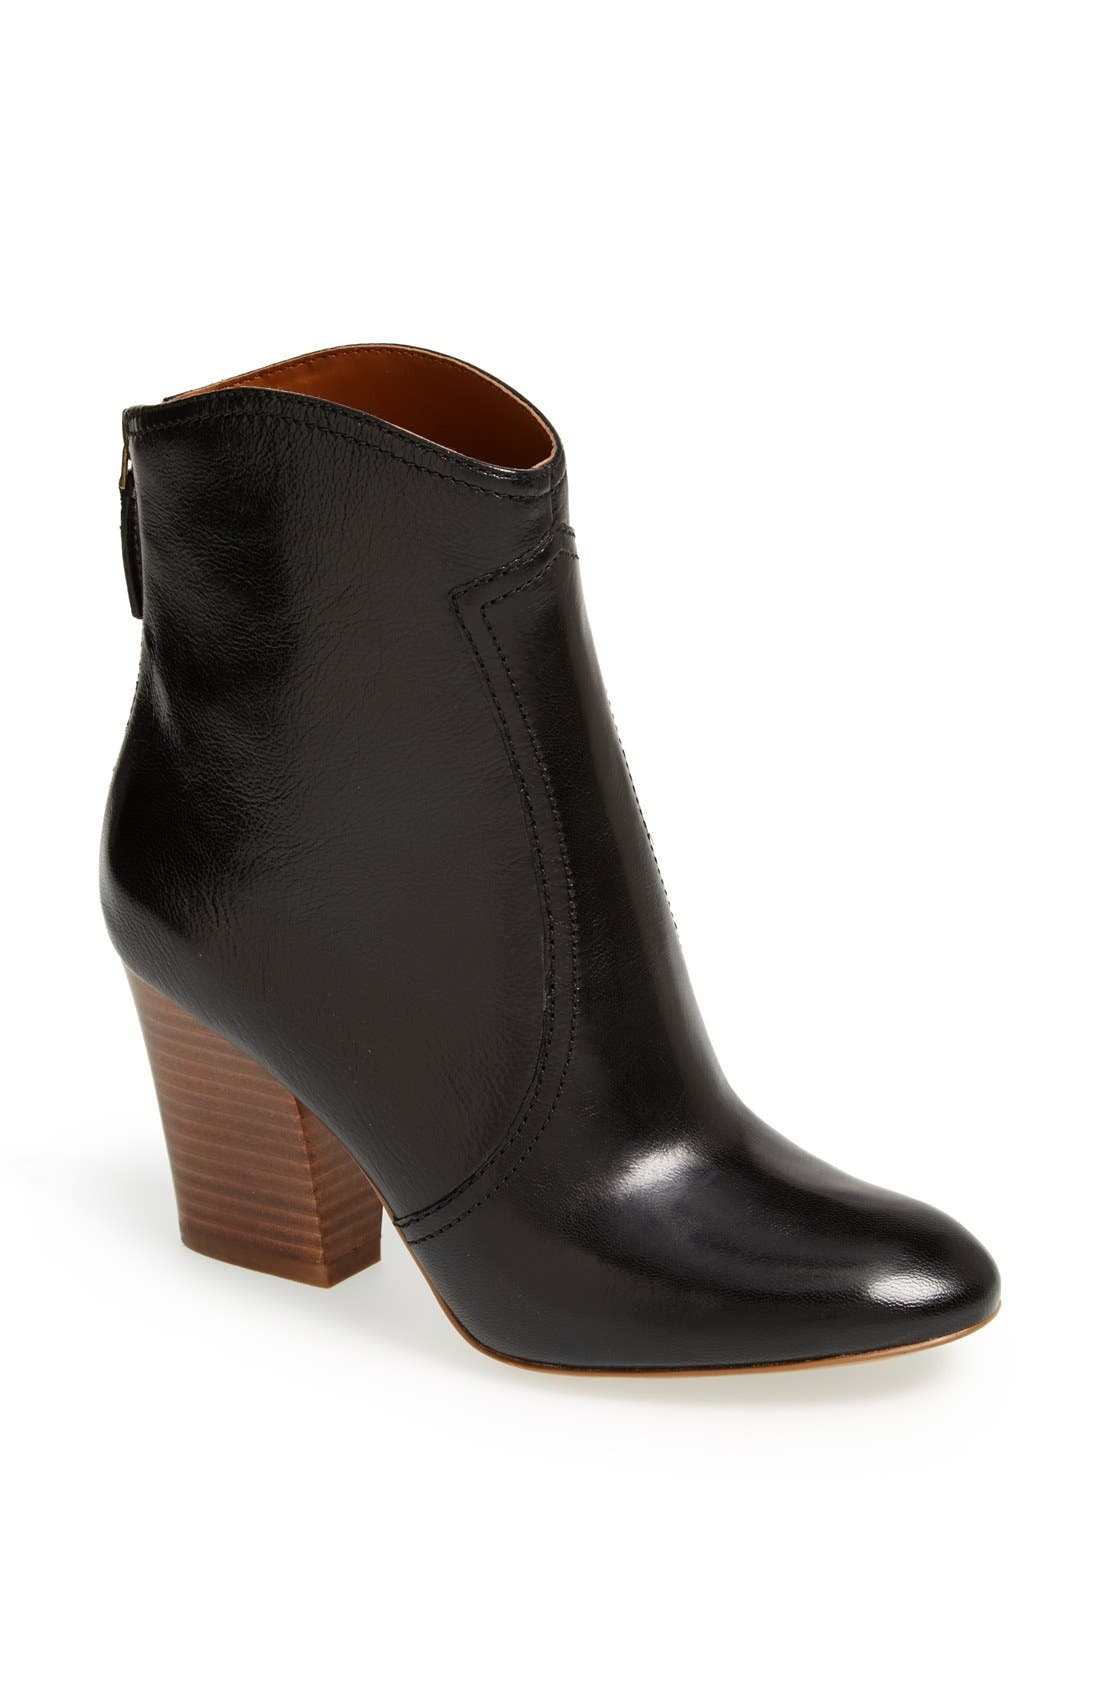 NINE WEST 'Dashiell' Leather Boot, Main, color, 001